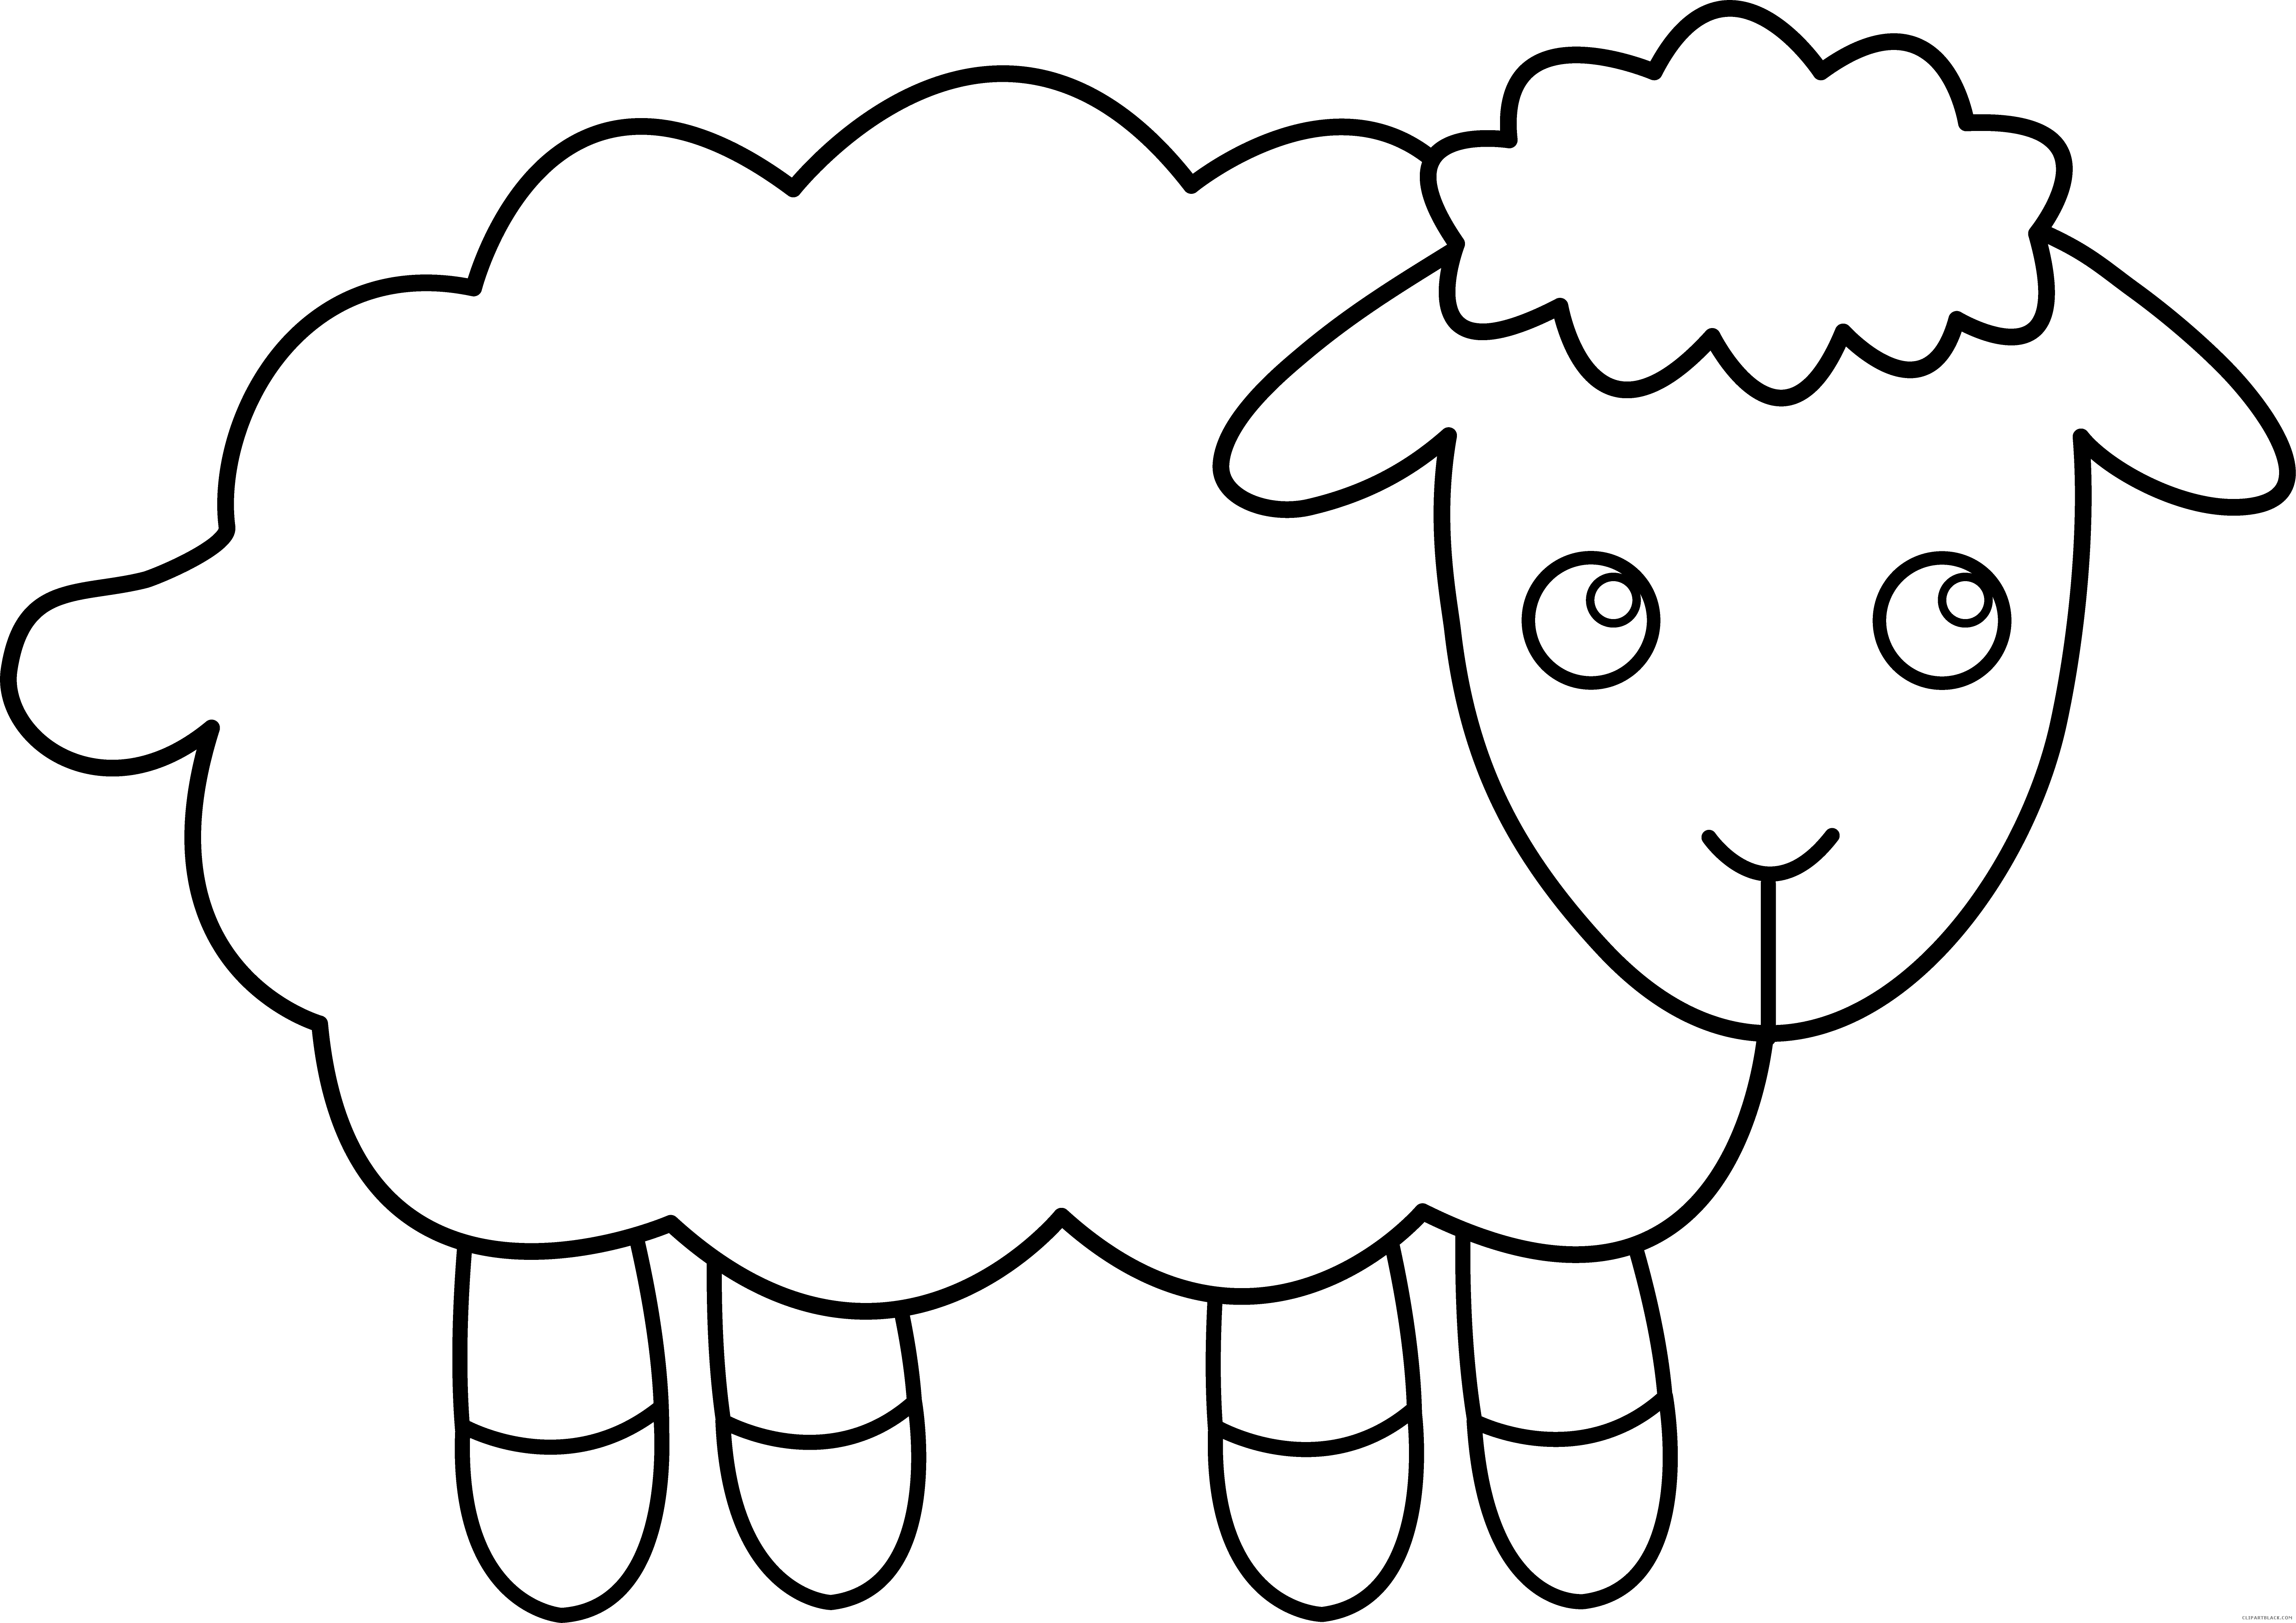 Black sheep wool clip. Lamb clipart realistic